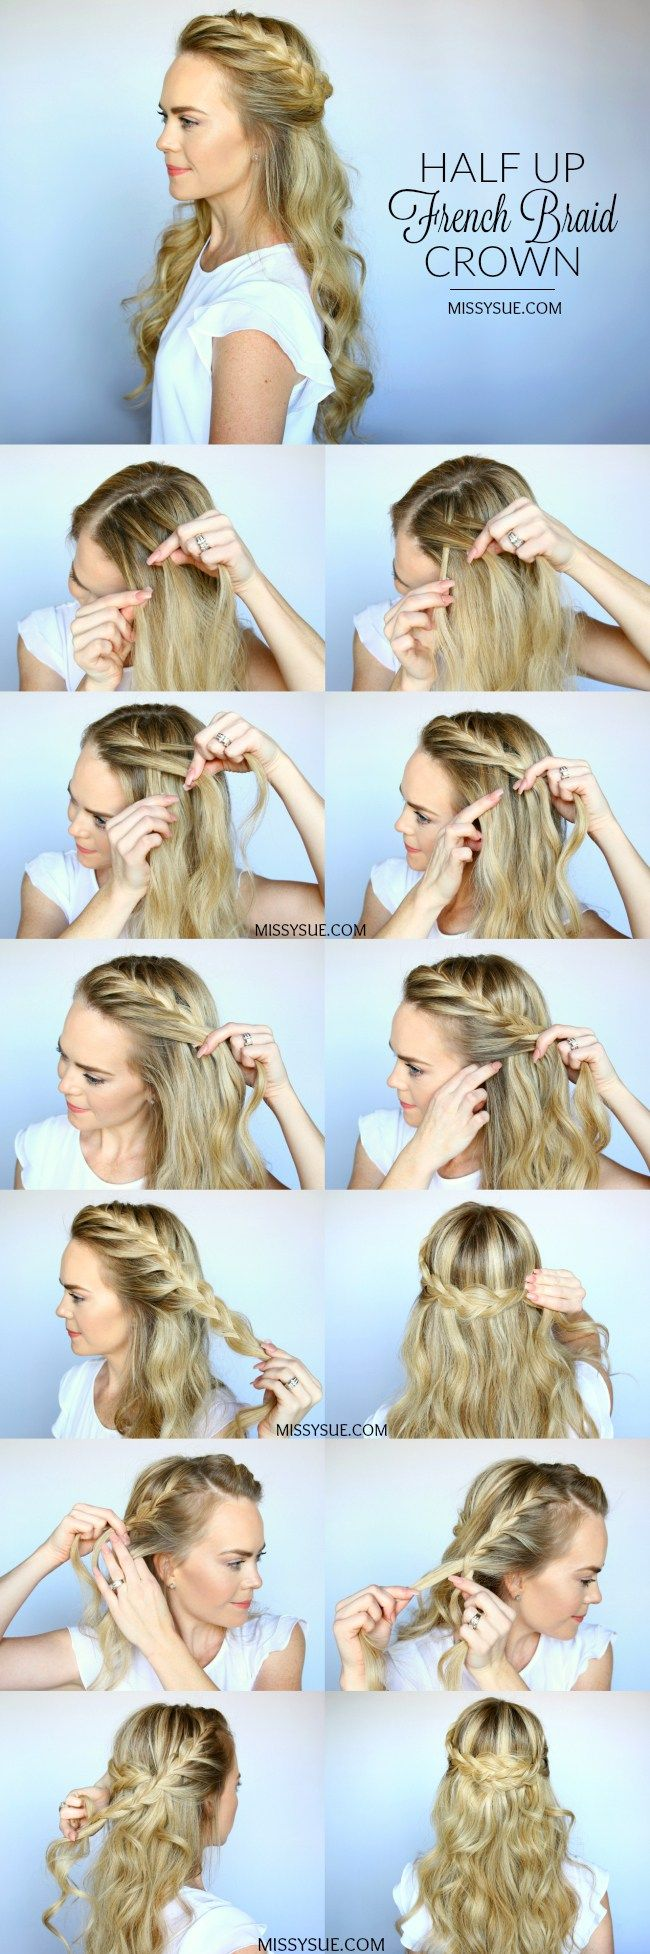 French braiding tips - Learn How To Create These Half Up French Braids Everyday Curls With Sallybeauty See